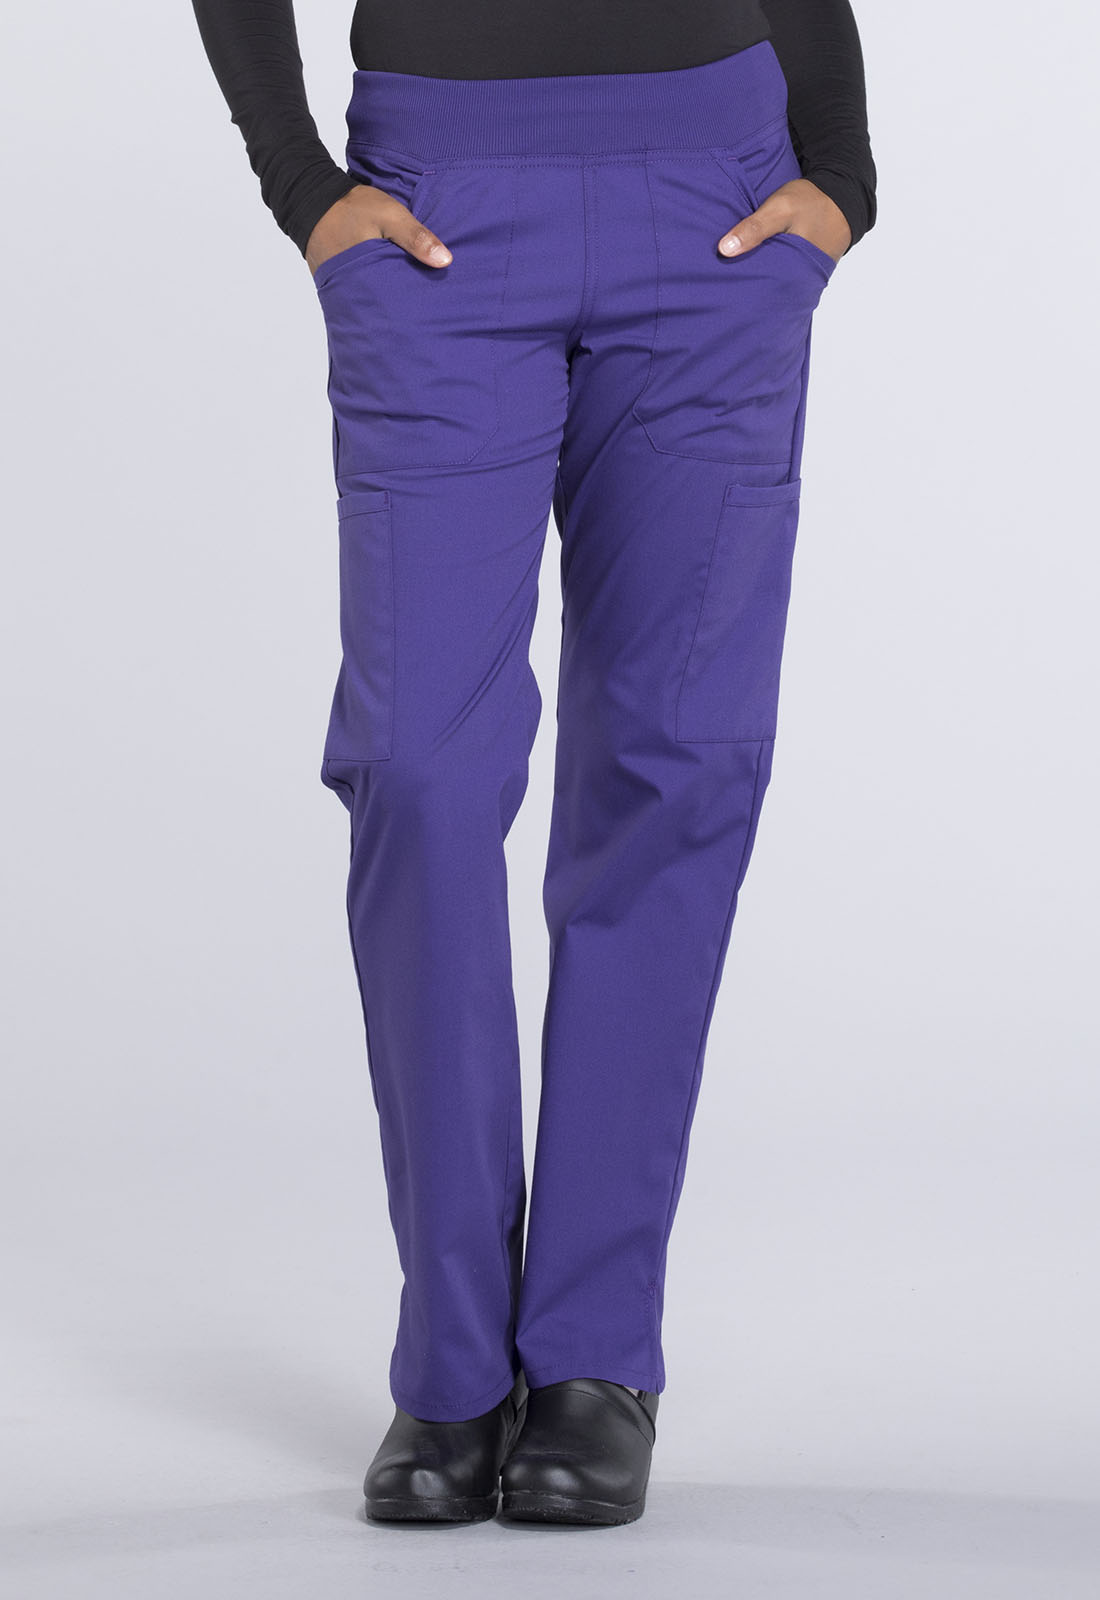 bf30d6173de Cherokee Workwear. WW Professionals Mid Rise Straight Leg Pull-on Cargo Pant  in Grape (Petite)